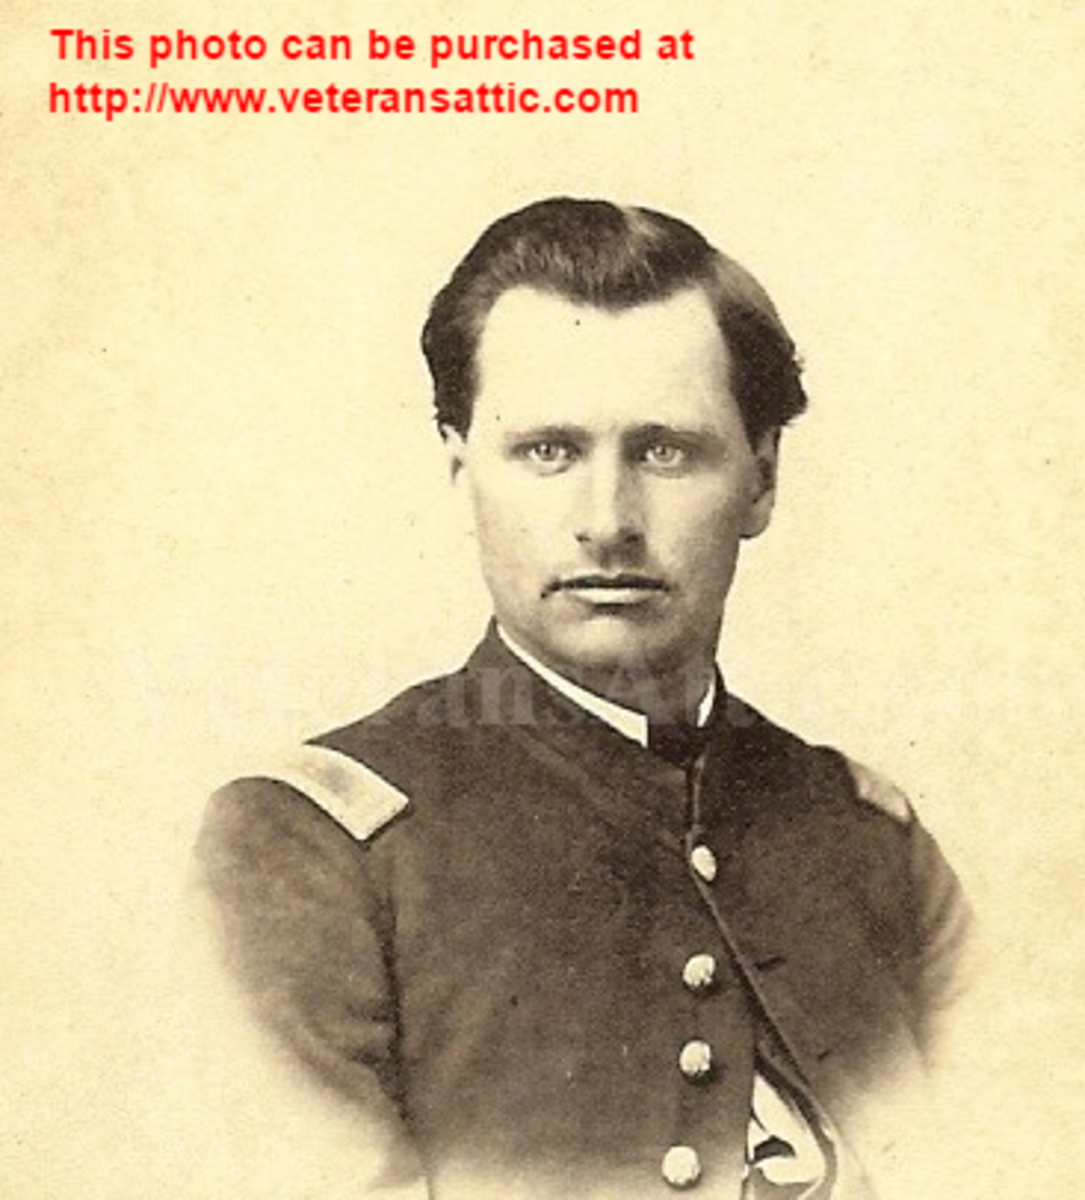 I found this photo on a site that sells Civil War memorabilia. I've put the link here for you.